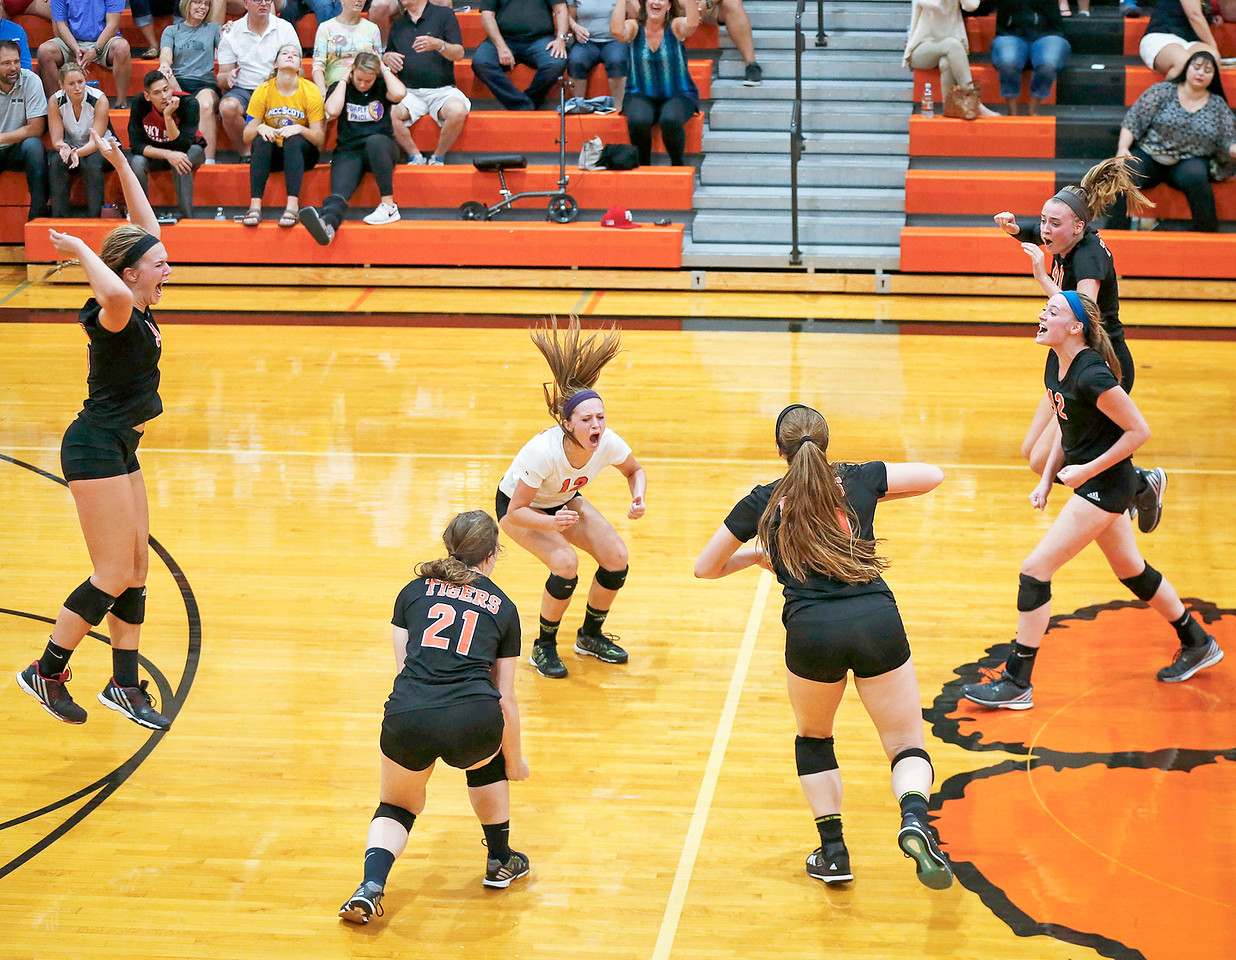 Crystal Lake Central players celebrate game point in their second game against Huntley at Crystal Lake Central High School on Thursday, September 21, 2017 in Crystal Lake, Illinois. The Tigers won the set in 2 games; 25-20, 25-23. John Konstantaras photo for Shaw Media